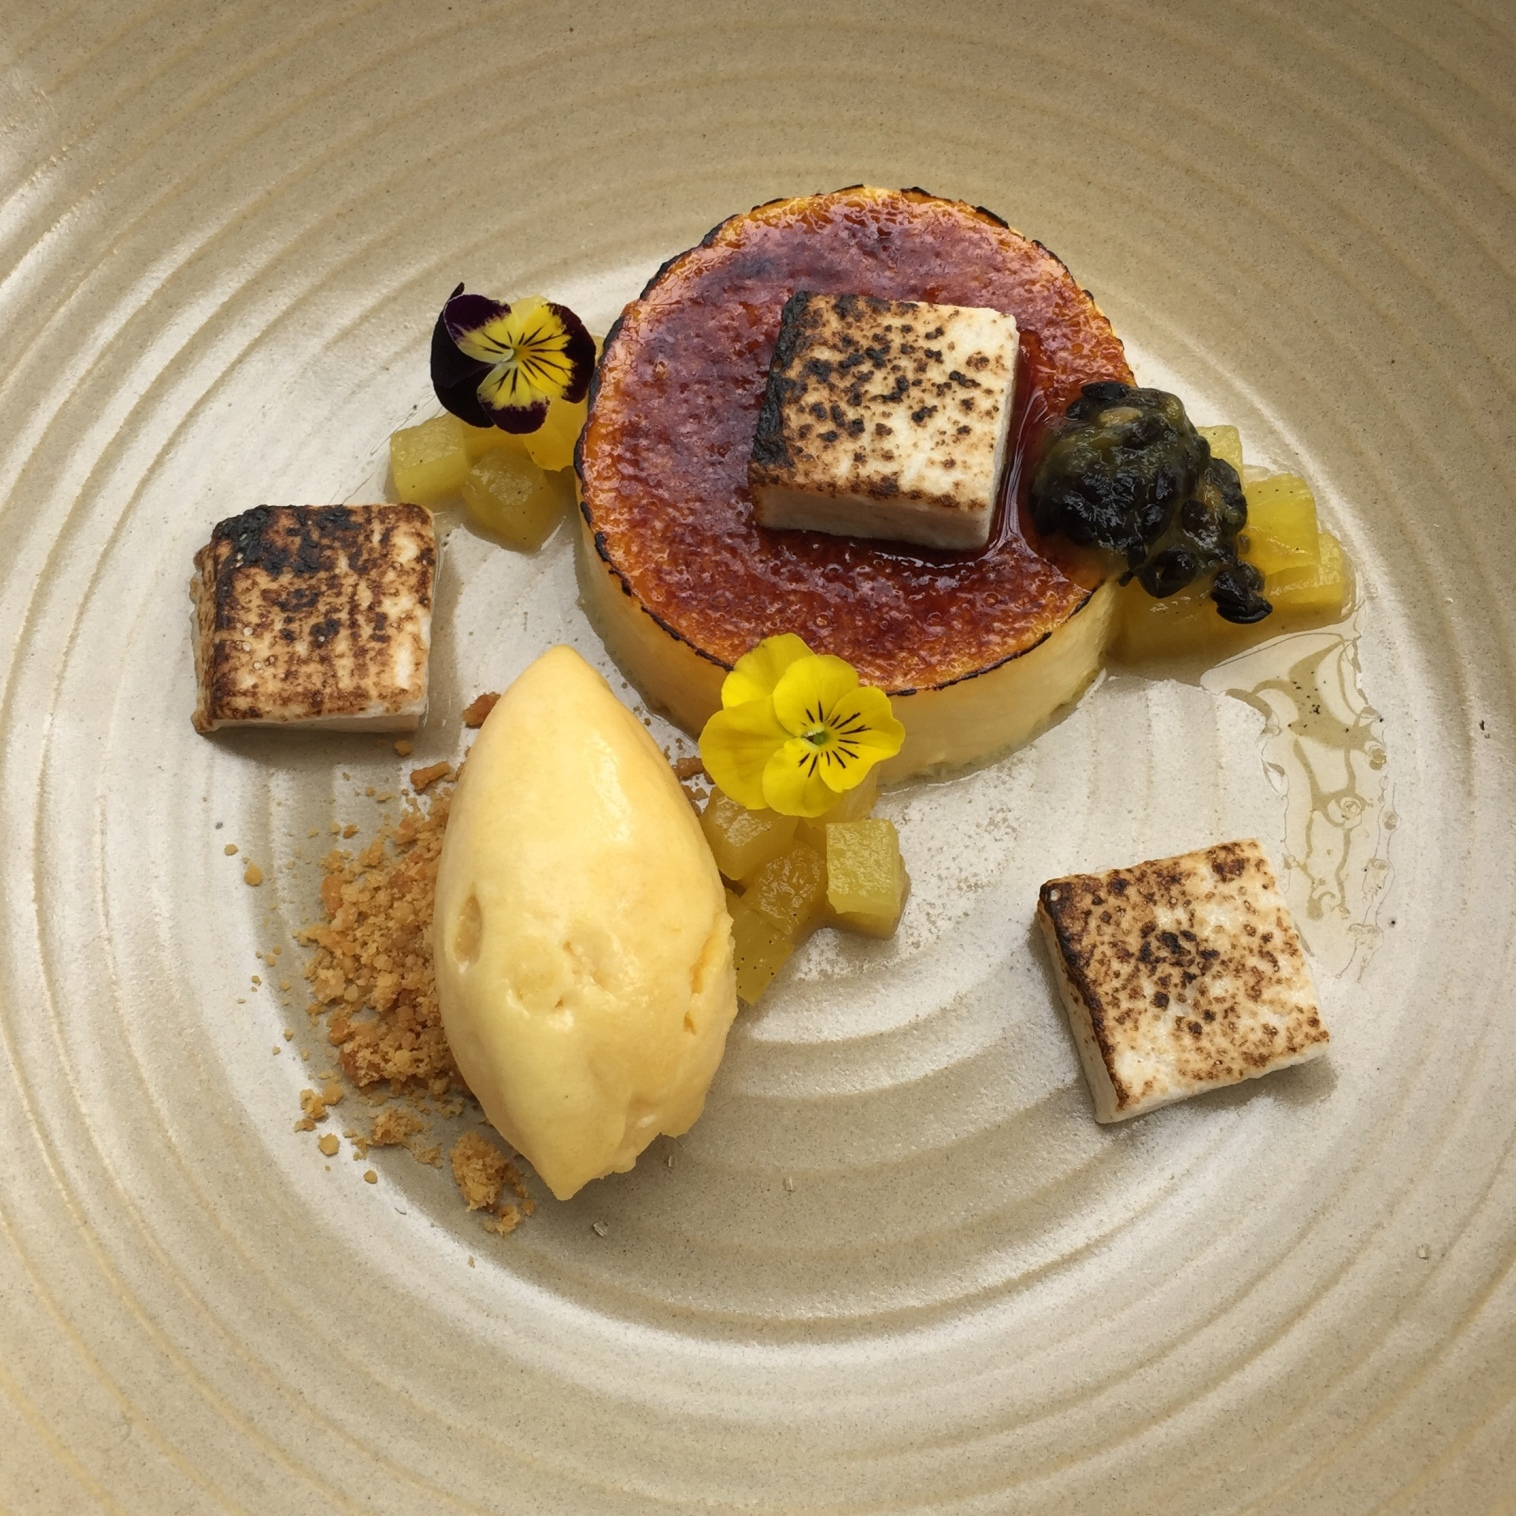 Coconut creme brulee with pineapple confit, banana marshmallow and passionfruit sorbet